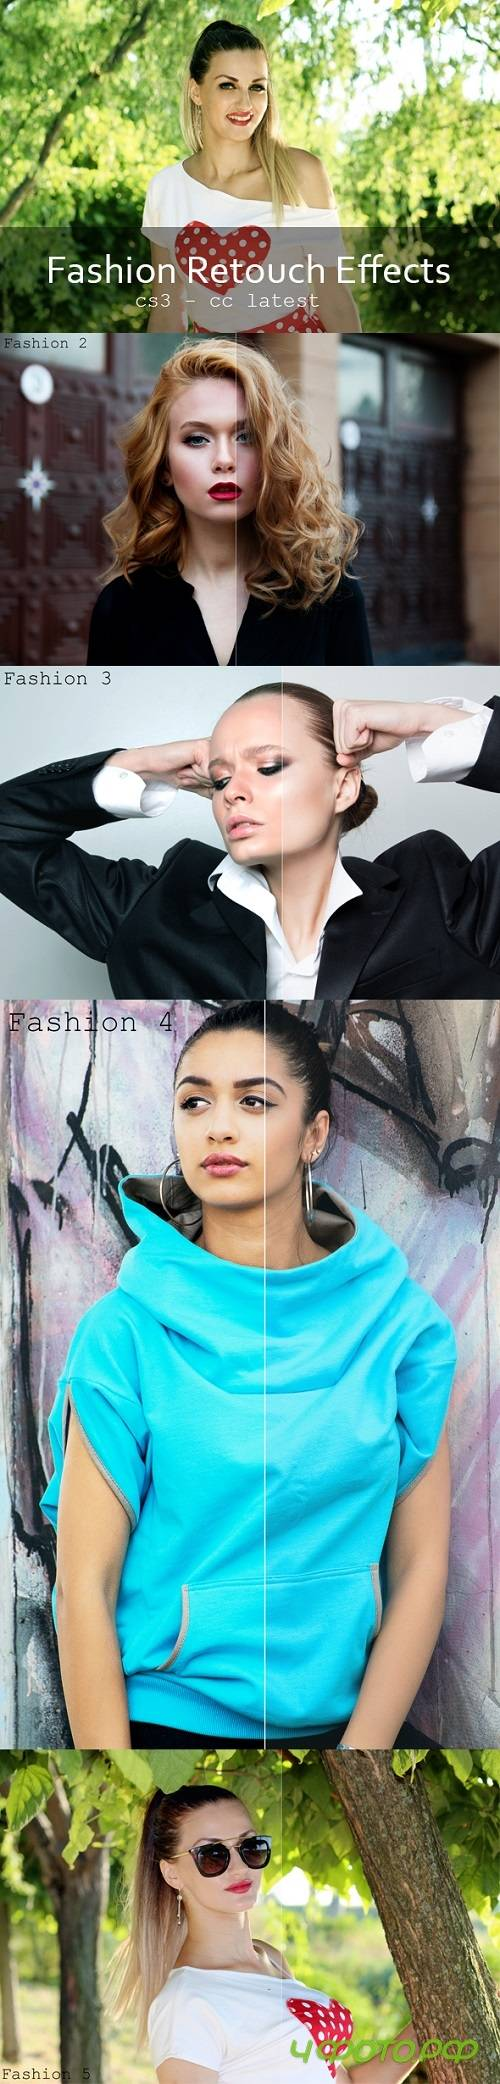 Fashion Retouch Effects  20242189